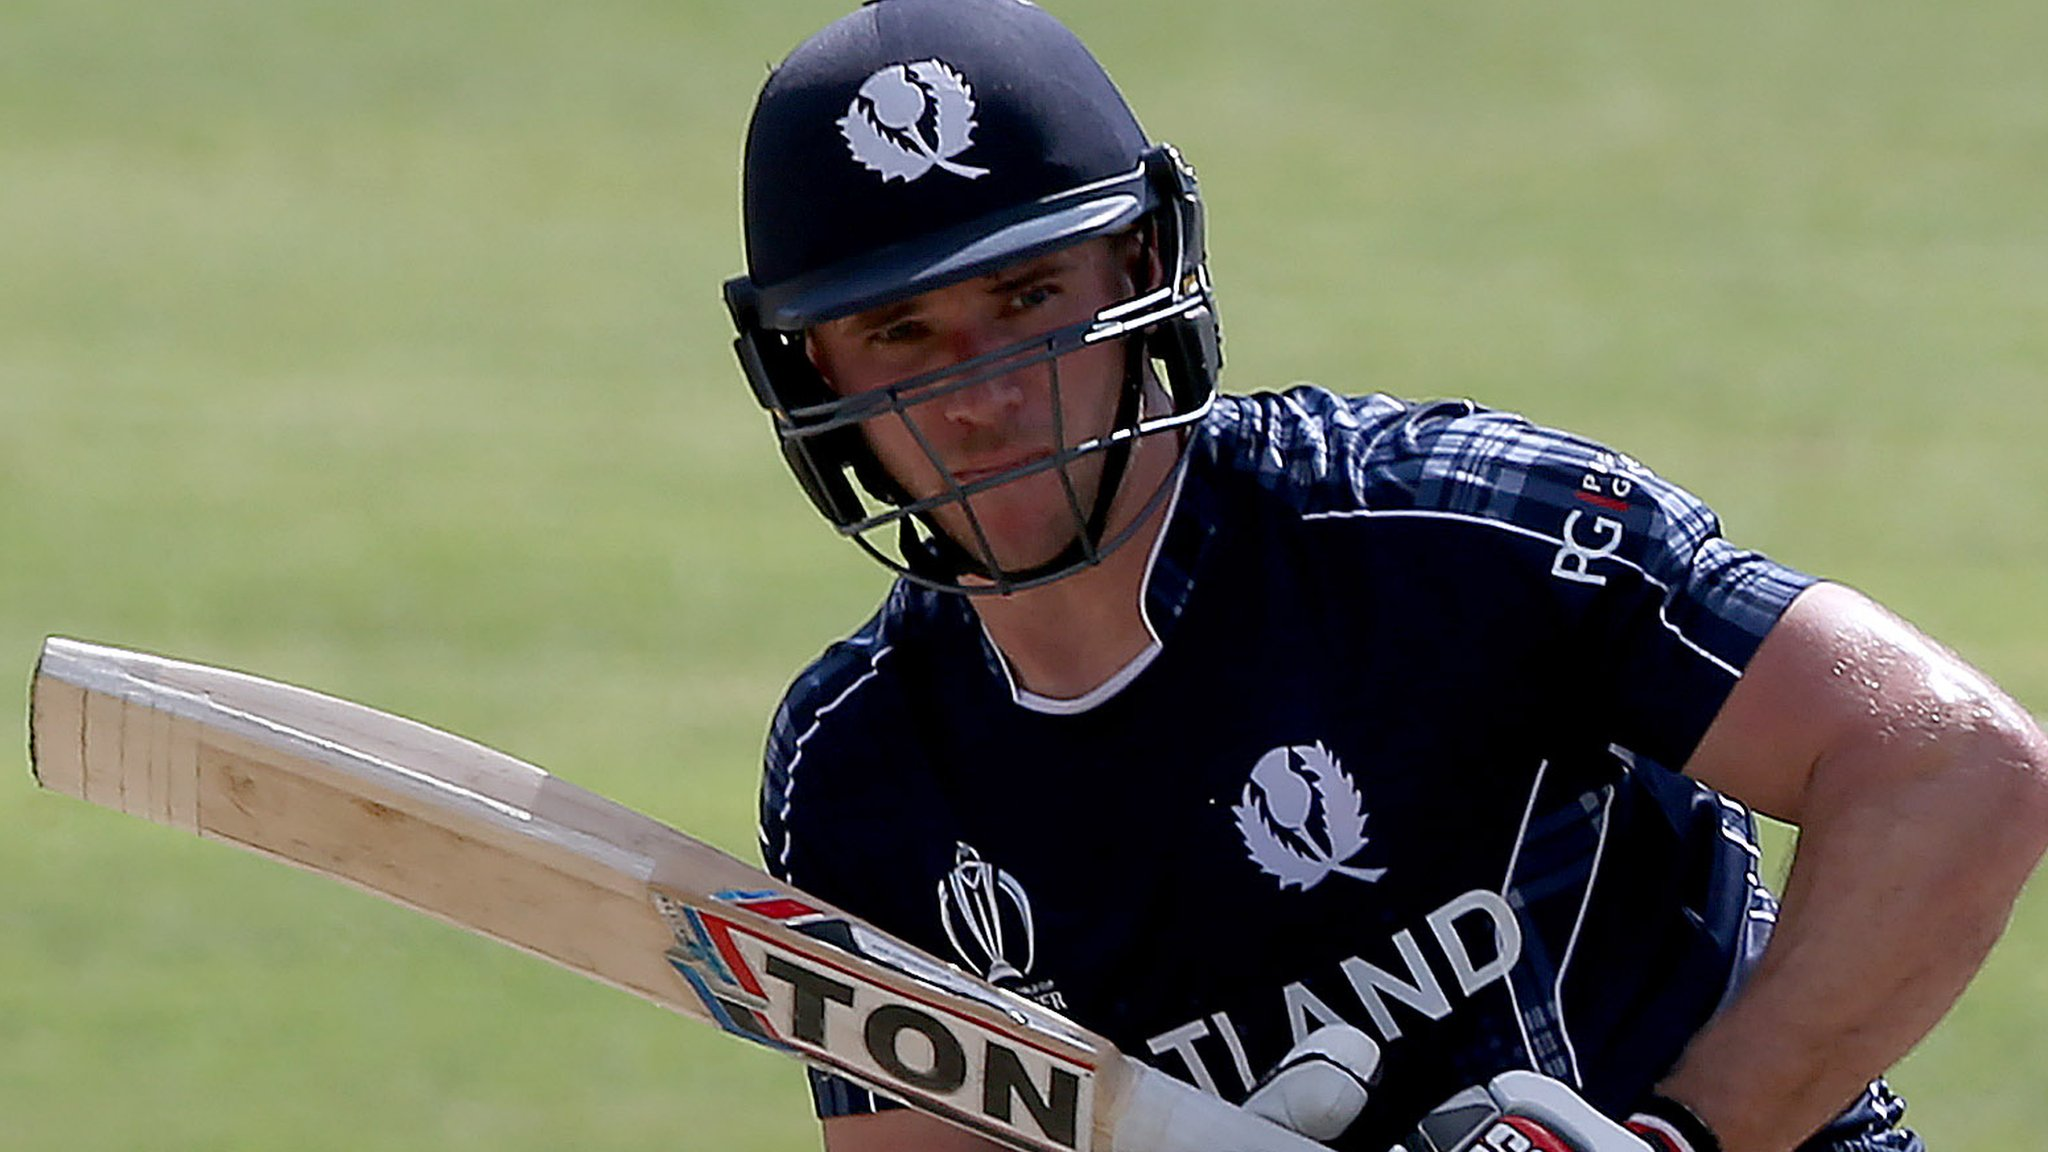 Scotland beat Oman to win T20 quadrangular series